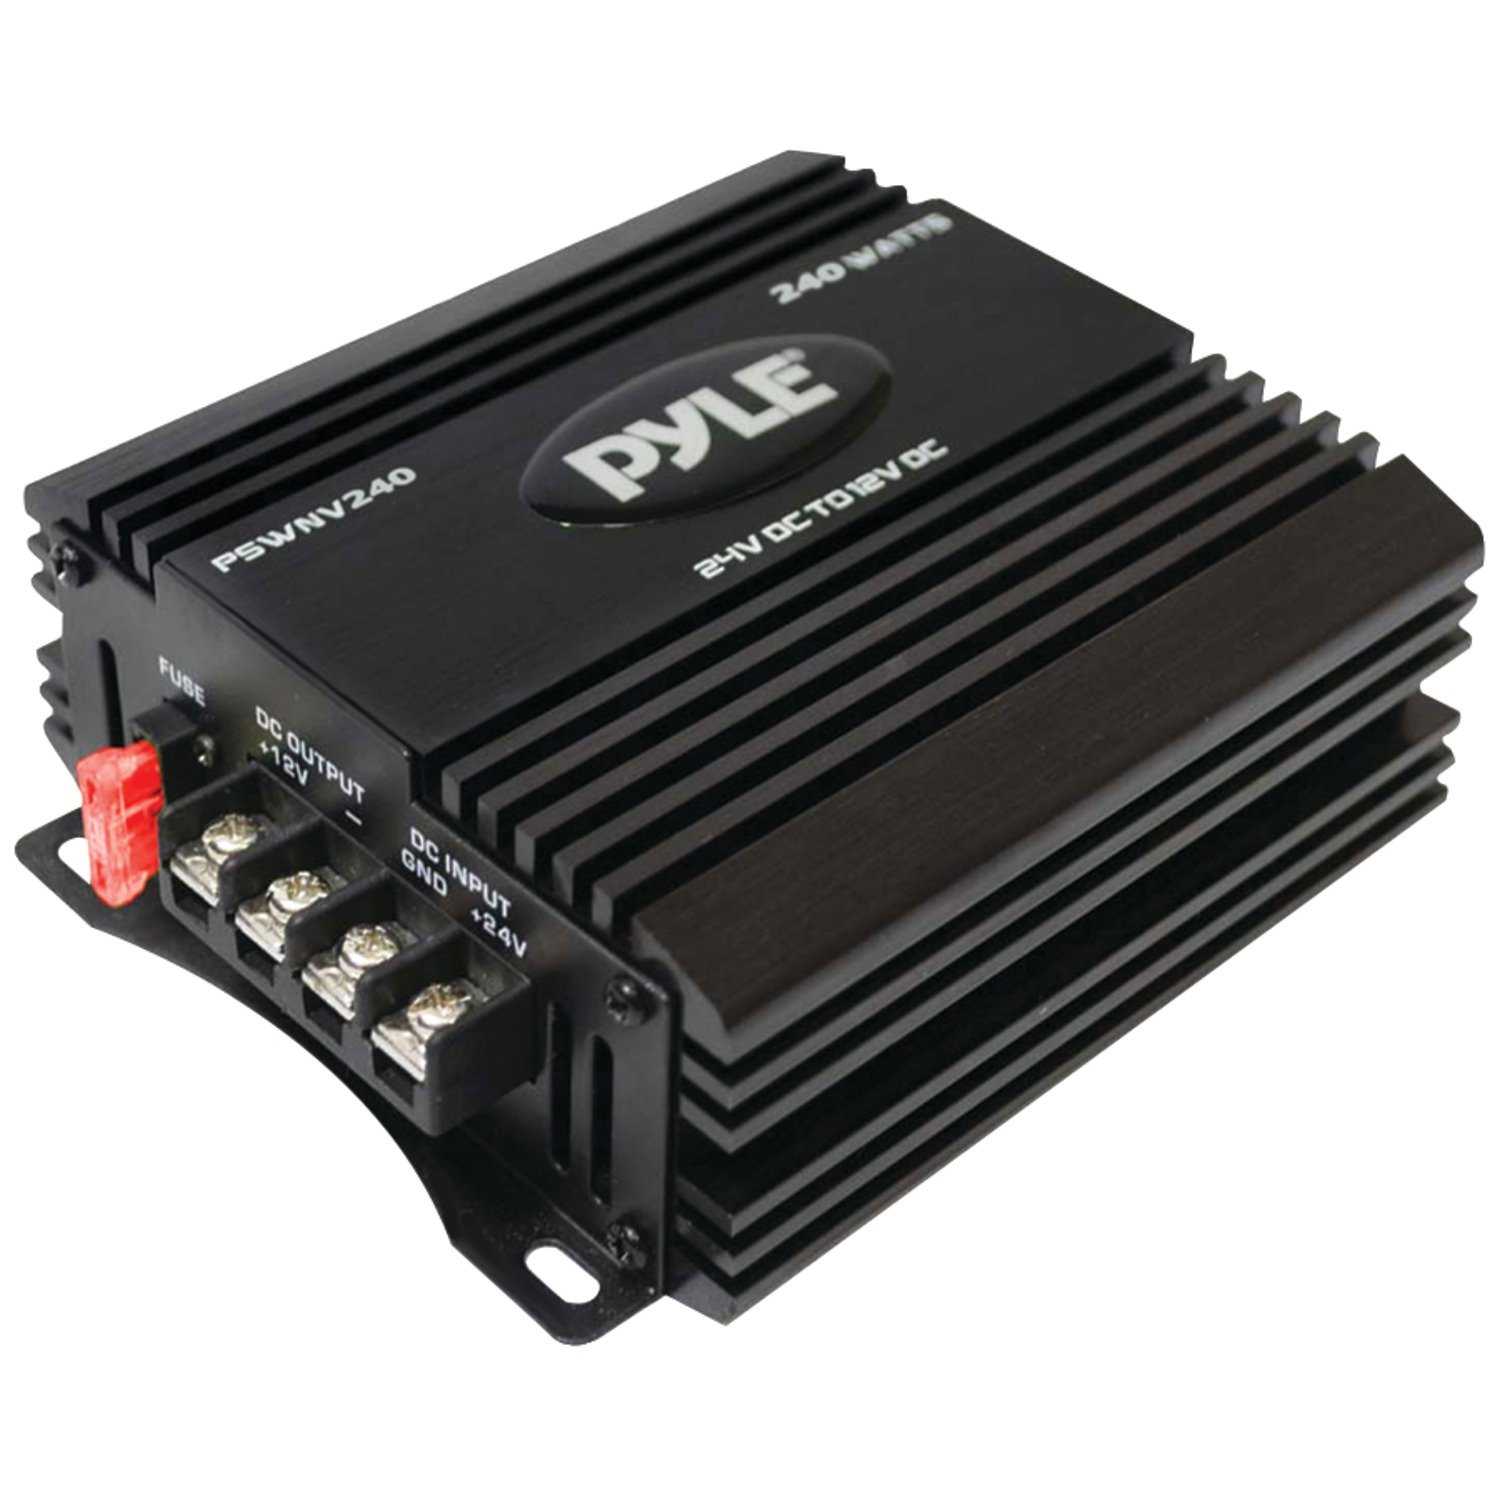 DC Power Step Down Converter - 24V to 12V 10A 240W Peak Universal Auto Mini DC-DC Voltage Step-Down Buck Converter Regulator Reducer Travel Adapter w/ PWM Technology, For Car RV Truck - Pyle PSWNV240 by Pyle